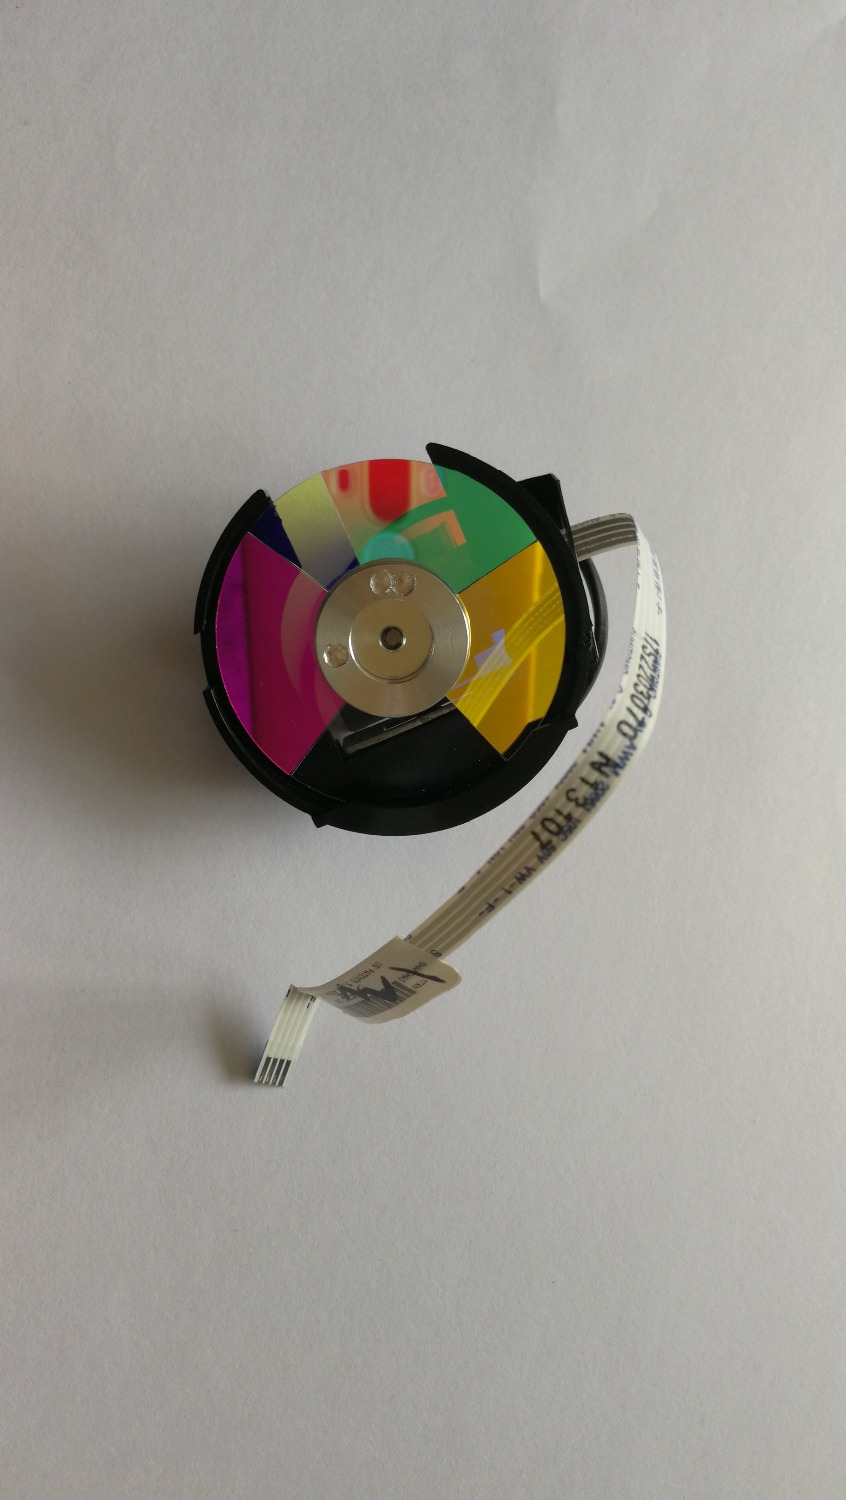 Original New For BENQ EP880 SP870 Projector Color WheelOriginal New For BENQ EP880 SP870 Projector Color Wheel